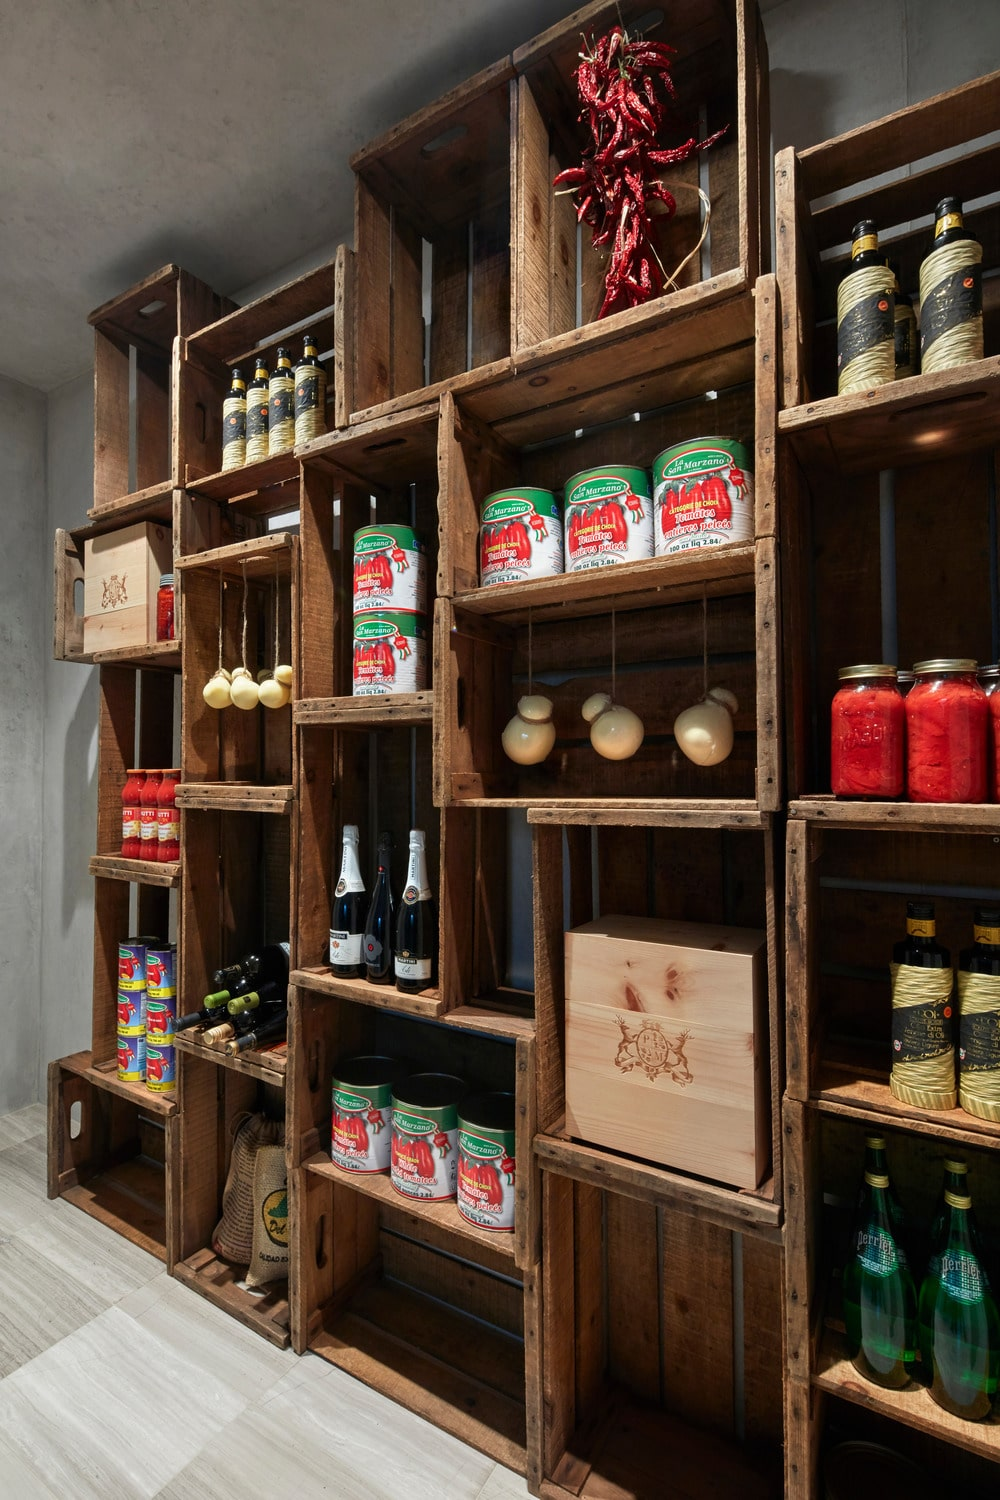 This is a close look at the pantry of the house with a large wooden structure that has a rustic look to its assembled wooden crates to form uneven shelves filled with various food products for storage.